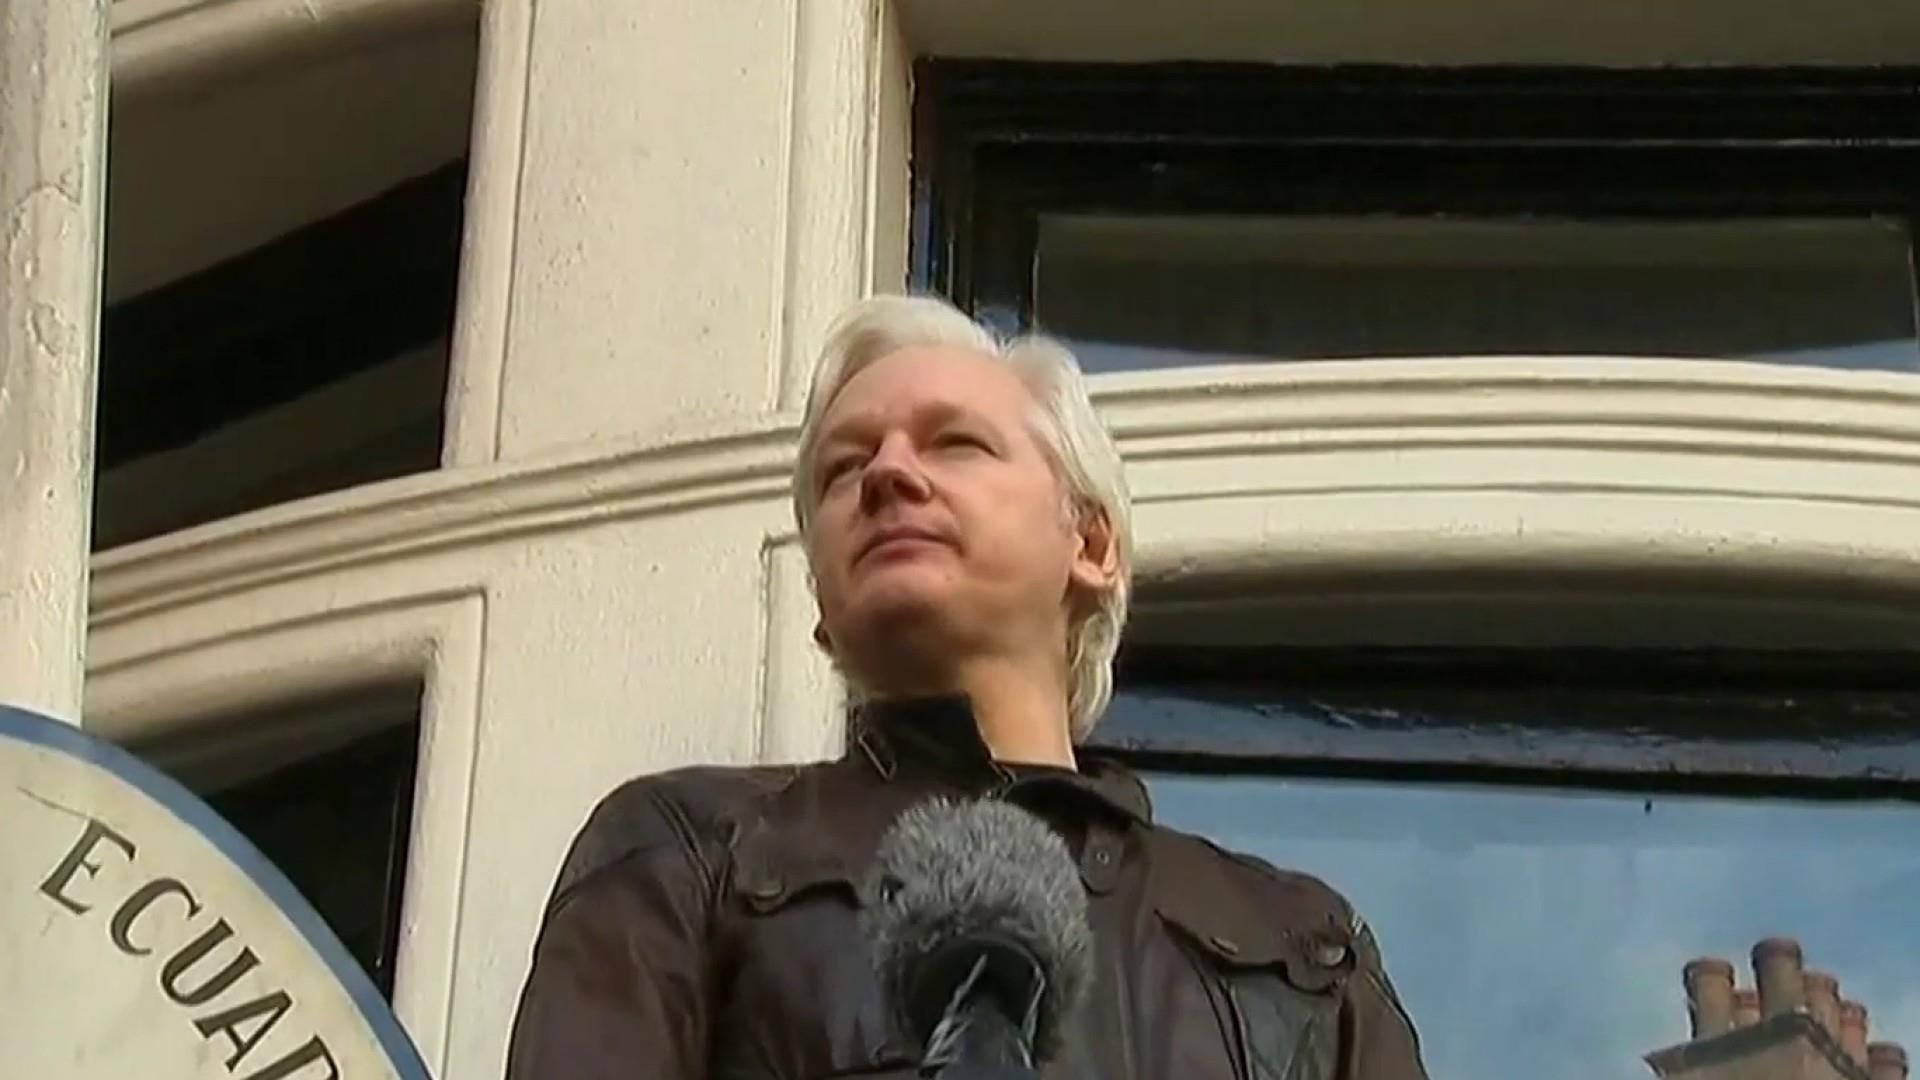 WikiLeaks co-founder Julian Assange indicted on 17 new charges under Espionage Act